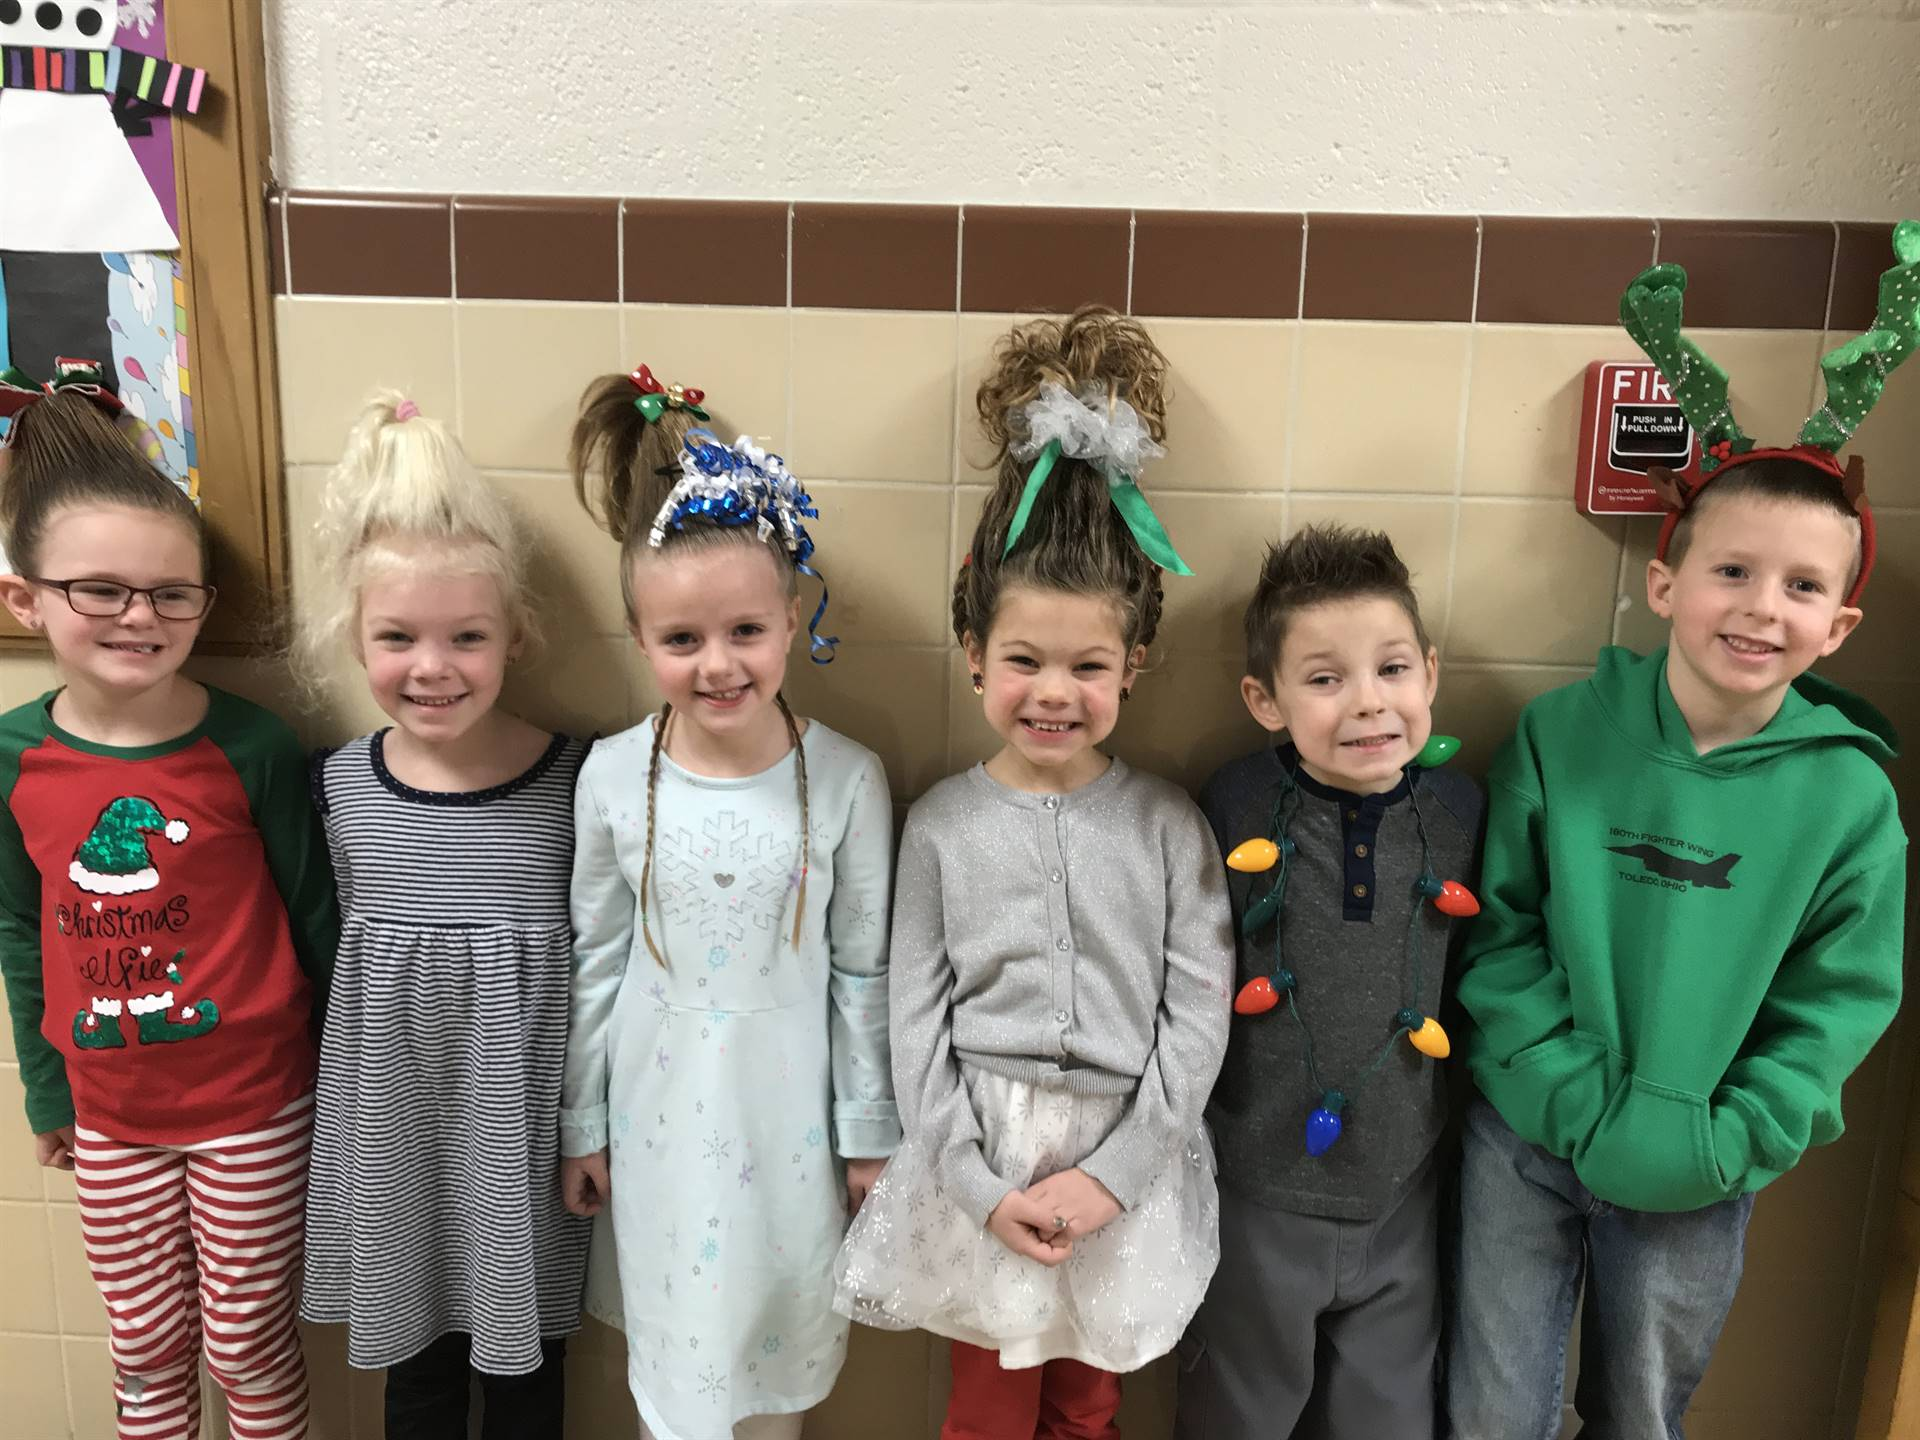 Mrs. Seitz's class dressed for The Grinch